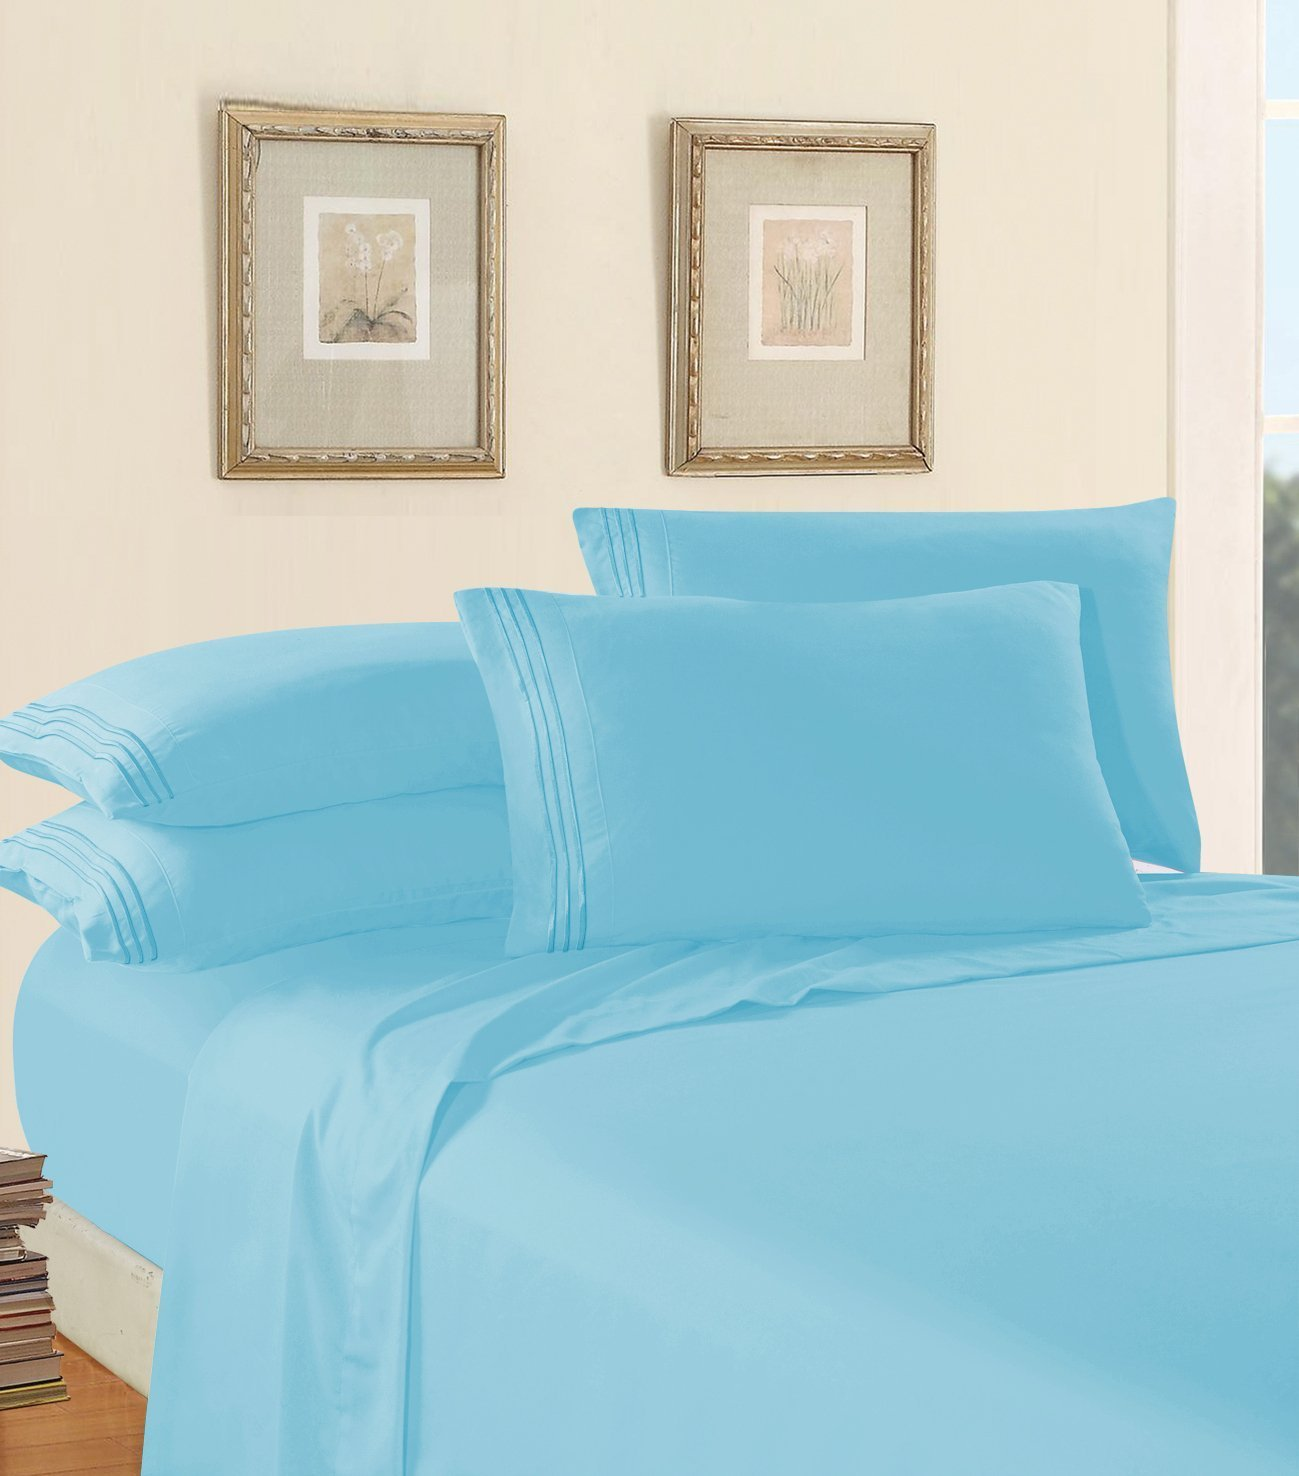 Luxury Bed Sheet Set on Amazon! Elegant Comfort Three-Line Design 1500 Thread Count Egyptian Quality Wrinkle and Fade Resistant 4-Piece Bed Sheet set, Deep Pocket, Full, Aqua Blue